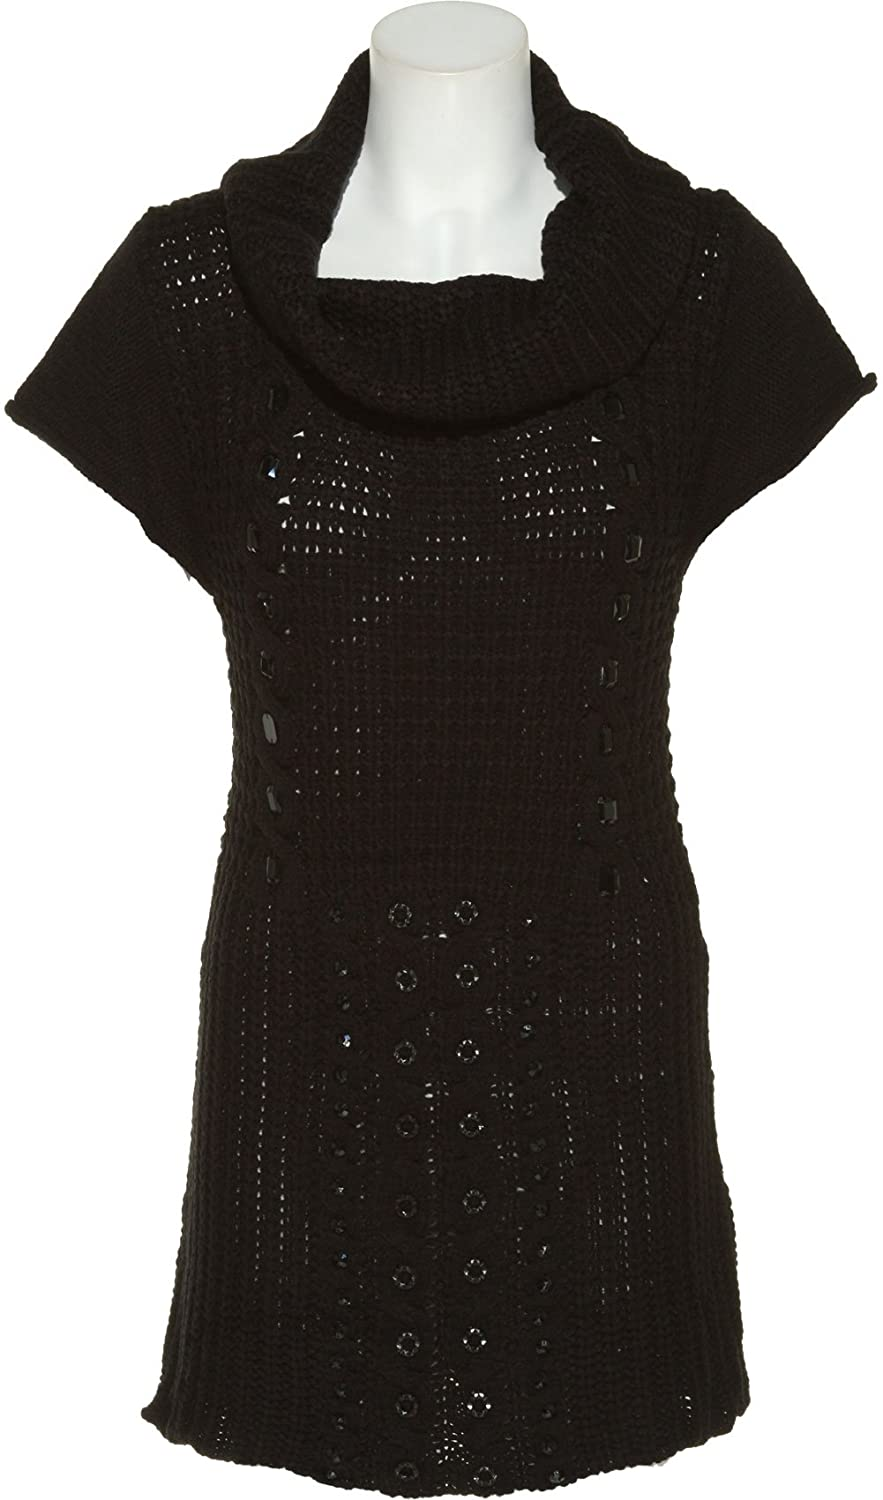 ROMEO & JULIET COUTURE Beaded Sweater Dress [RJSCSW1148]